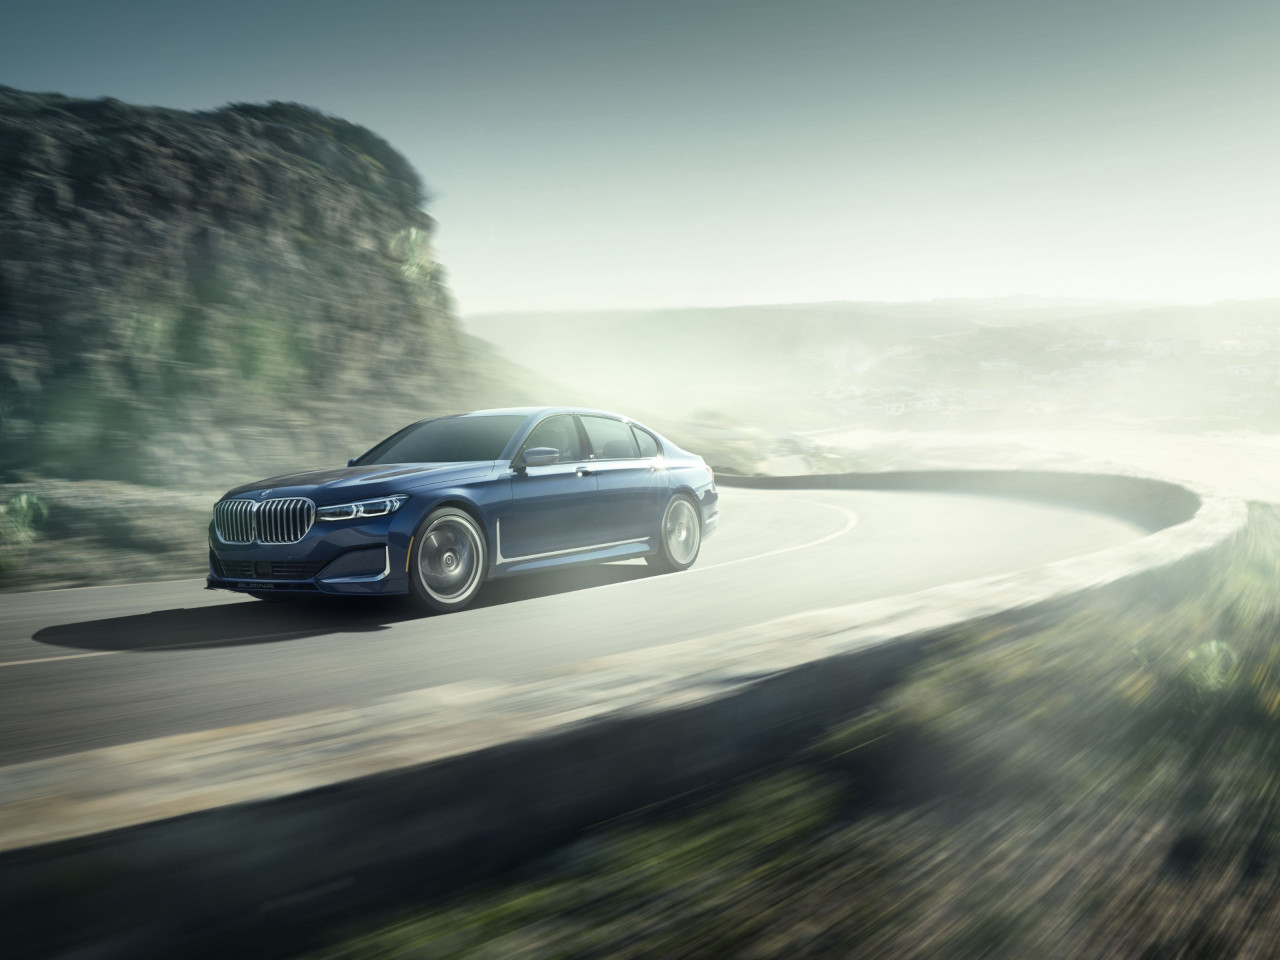 BMW Alpina B7 2019 wallpaper 1280x960